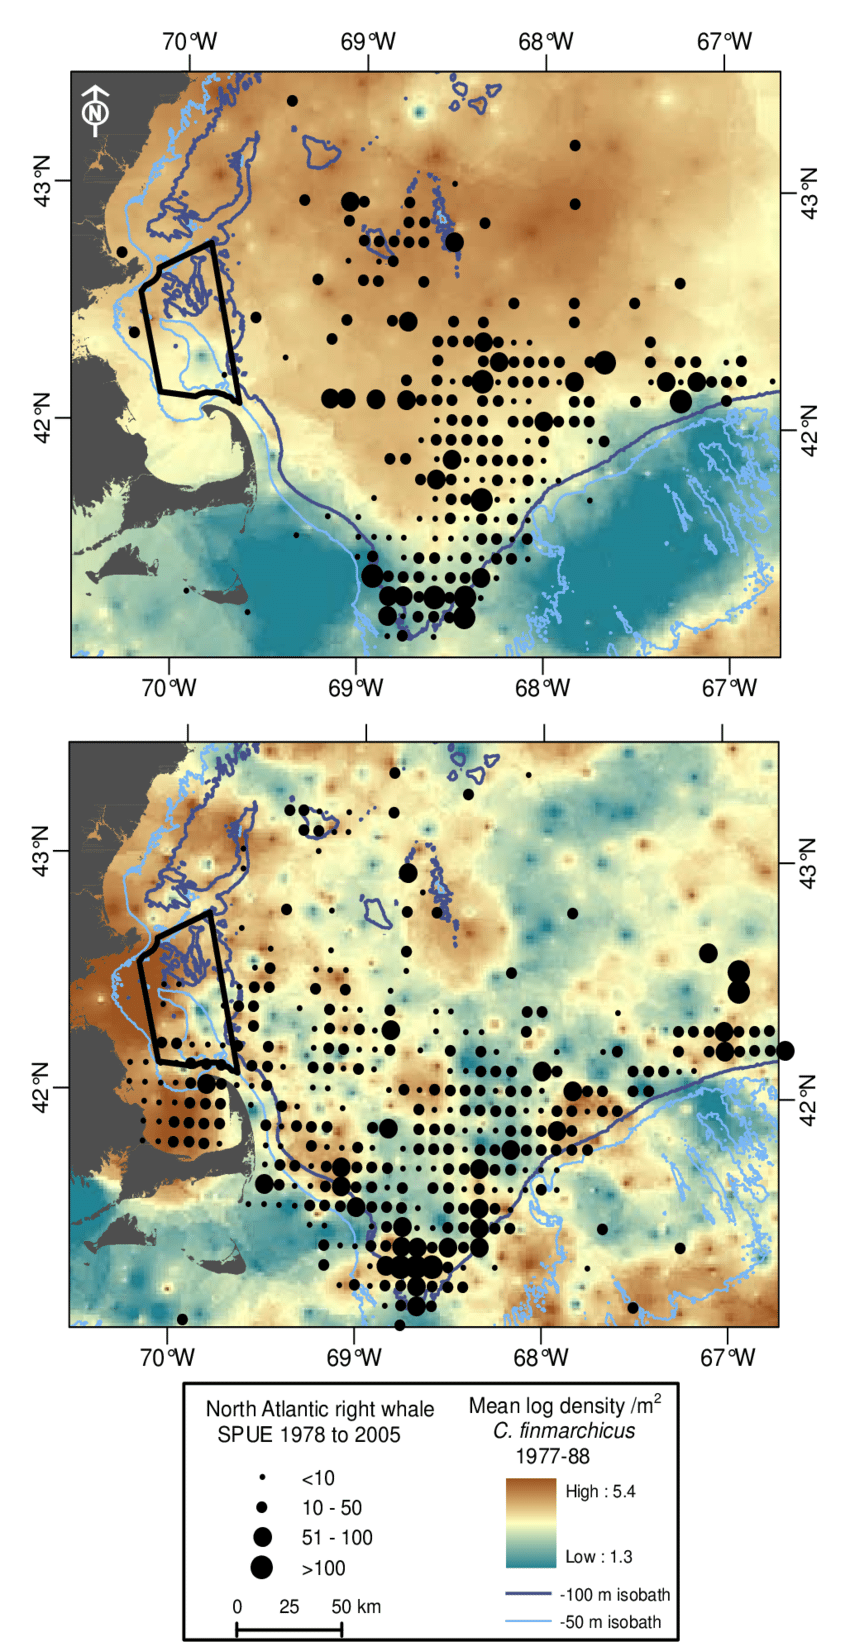 medium resolution of overlay of spatial distribution of north atlantic right whale relative abundance spue